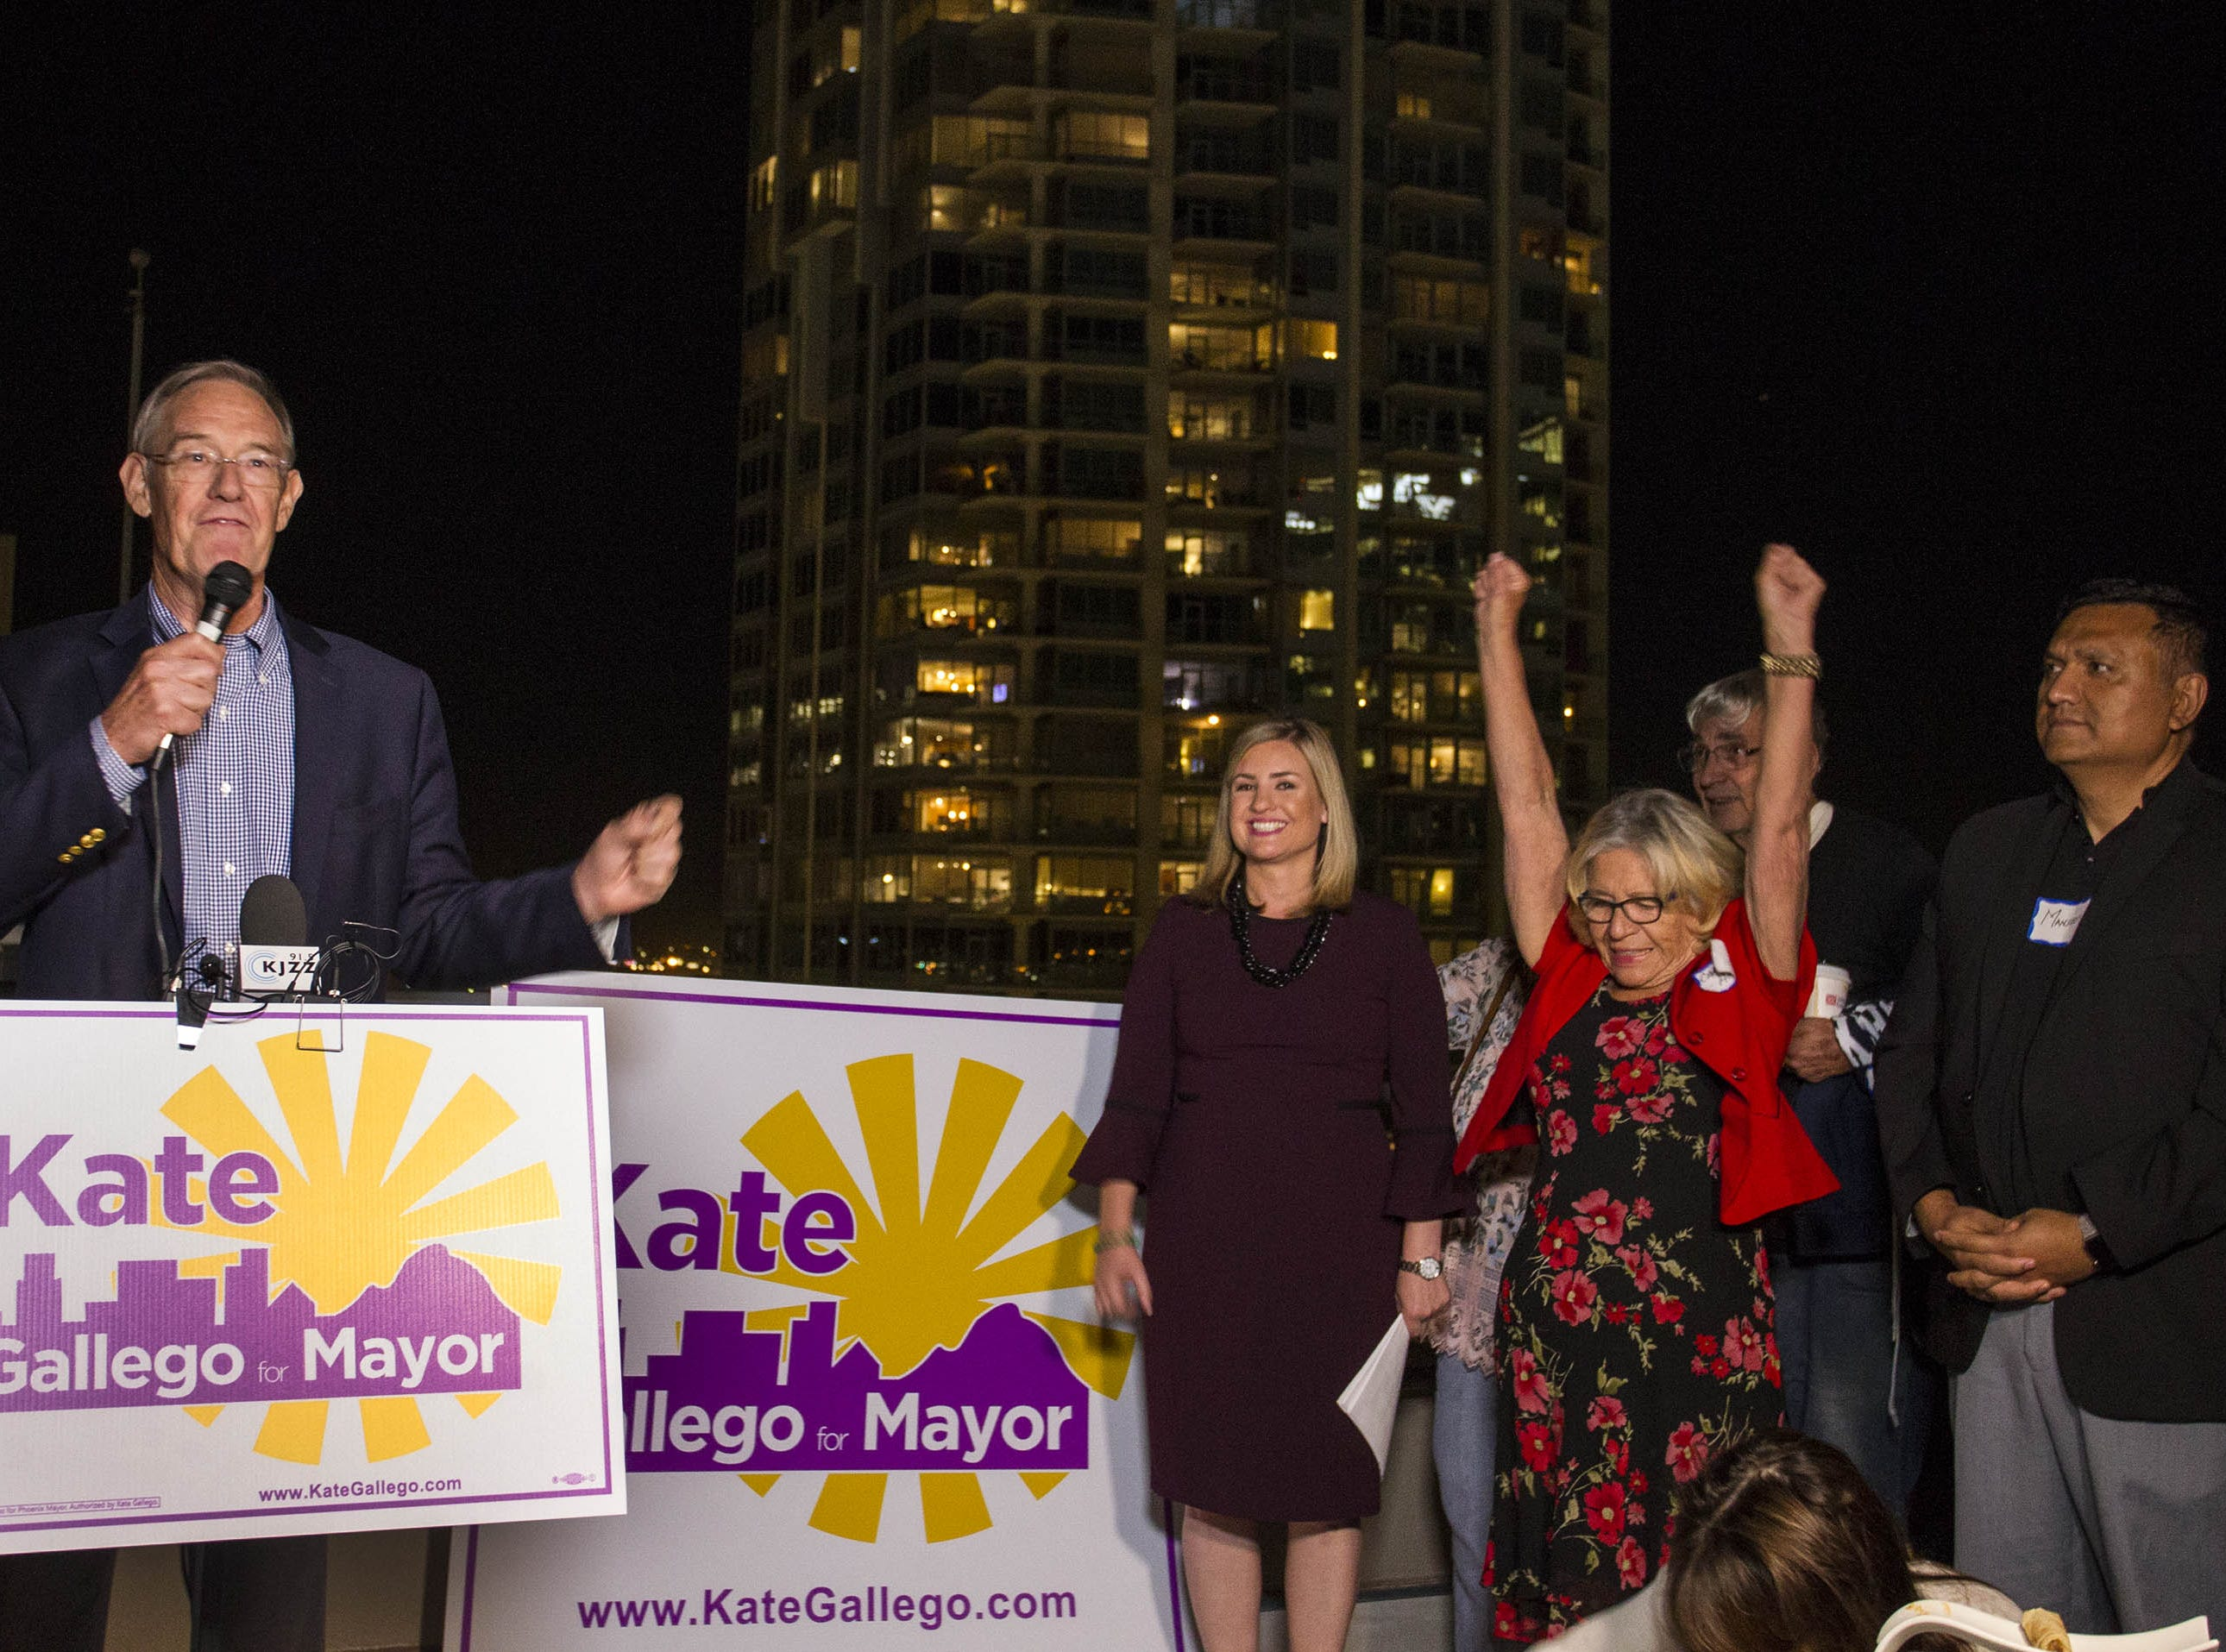 Former Phoenix Mayor Terry Goddard introduces Phoenix mayoral candidate Kate Gallego at the Hilton Garden Inn in Phoenix on Nov. 6, 2018.